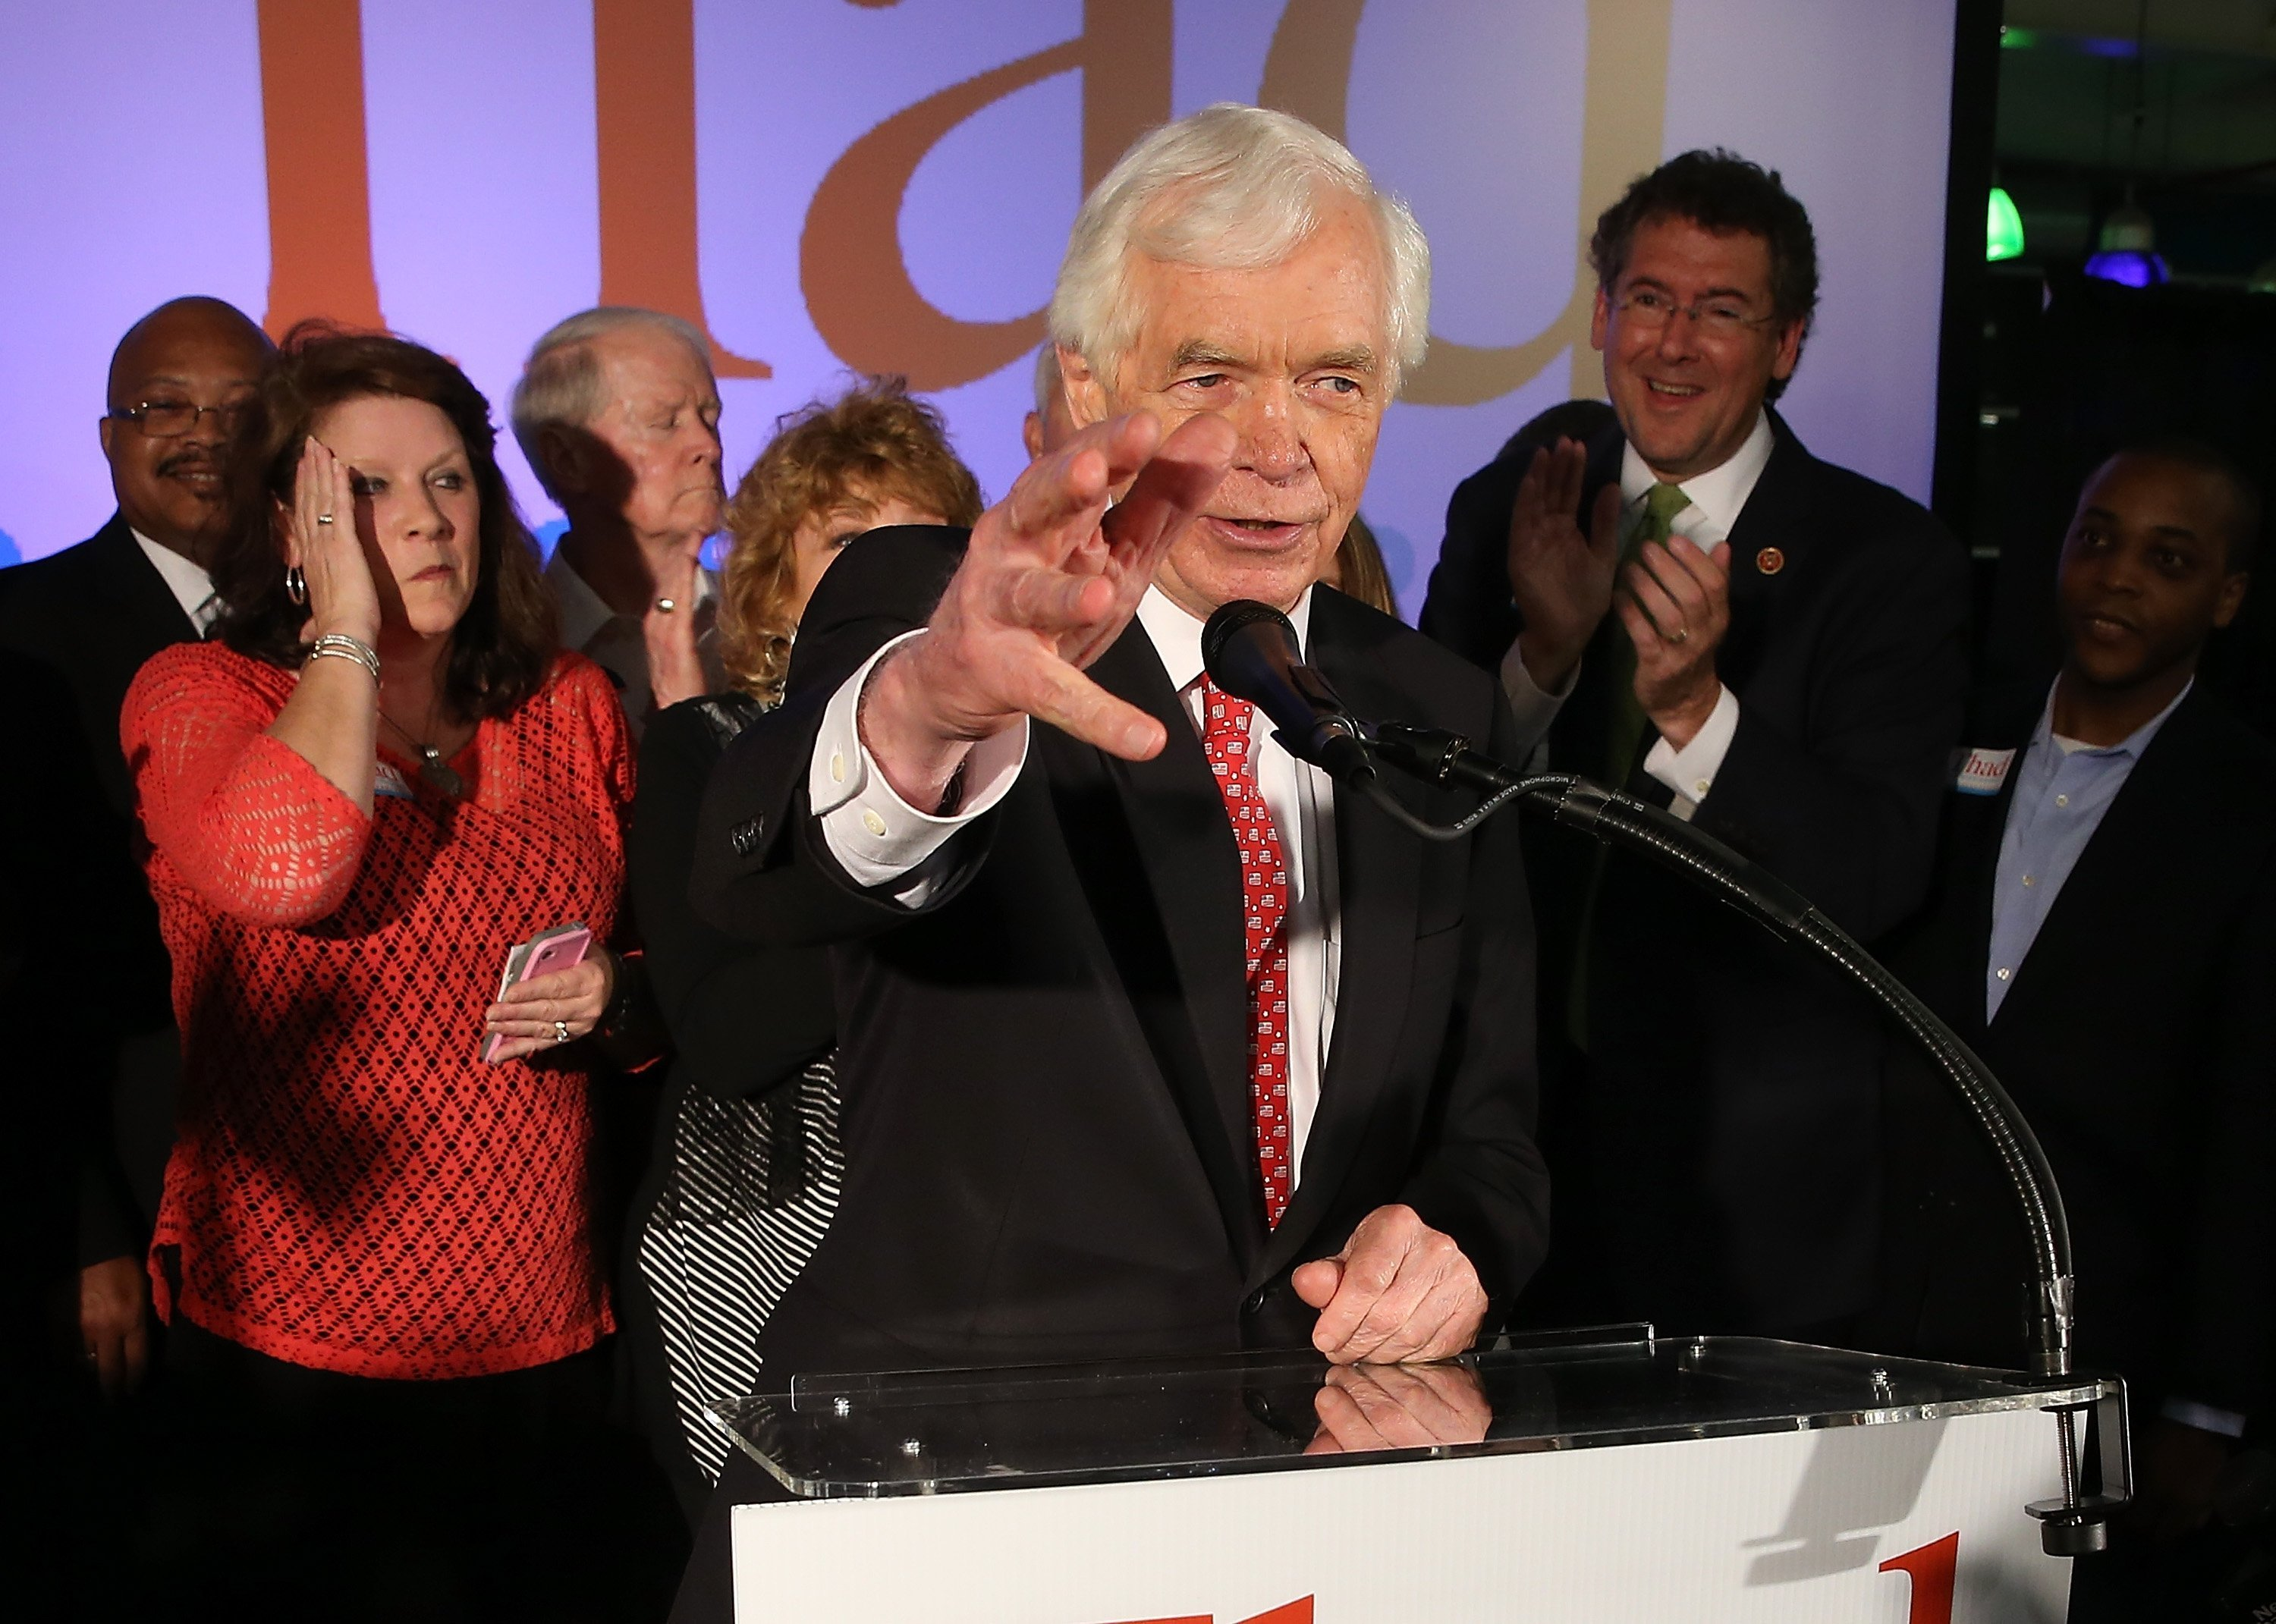 Mississippi Sen. Thad Cochran to Resign on April 1